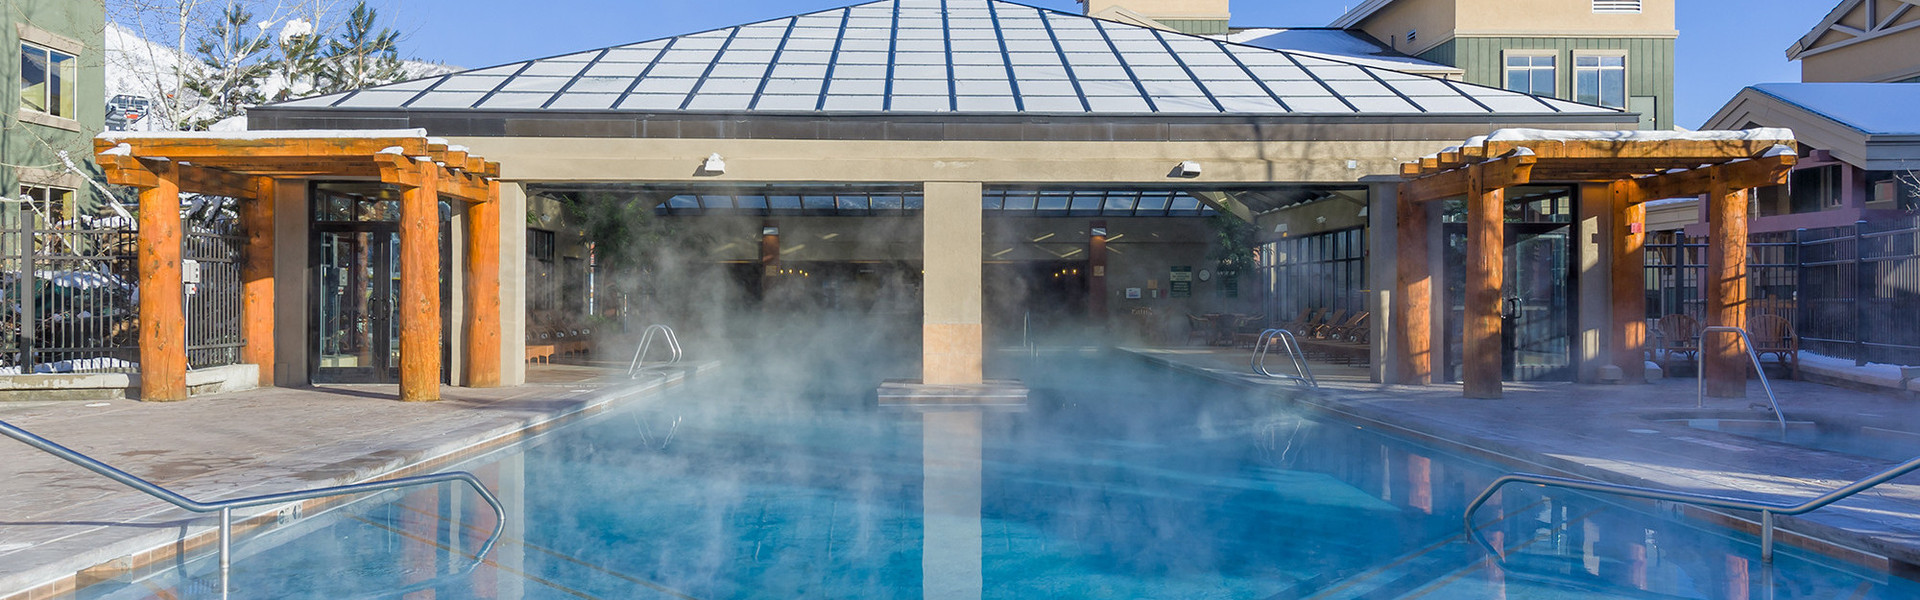 Indoor and Outdoor Heated Pools Whatever the season, you've got a reason to bring your bathing suit to Westgate Park City Resort & Spa with 2 indoor pools, 2 spa tubs, and a heated indoor/outdoor pool.